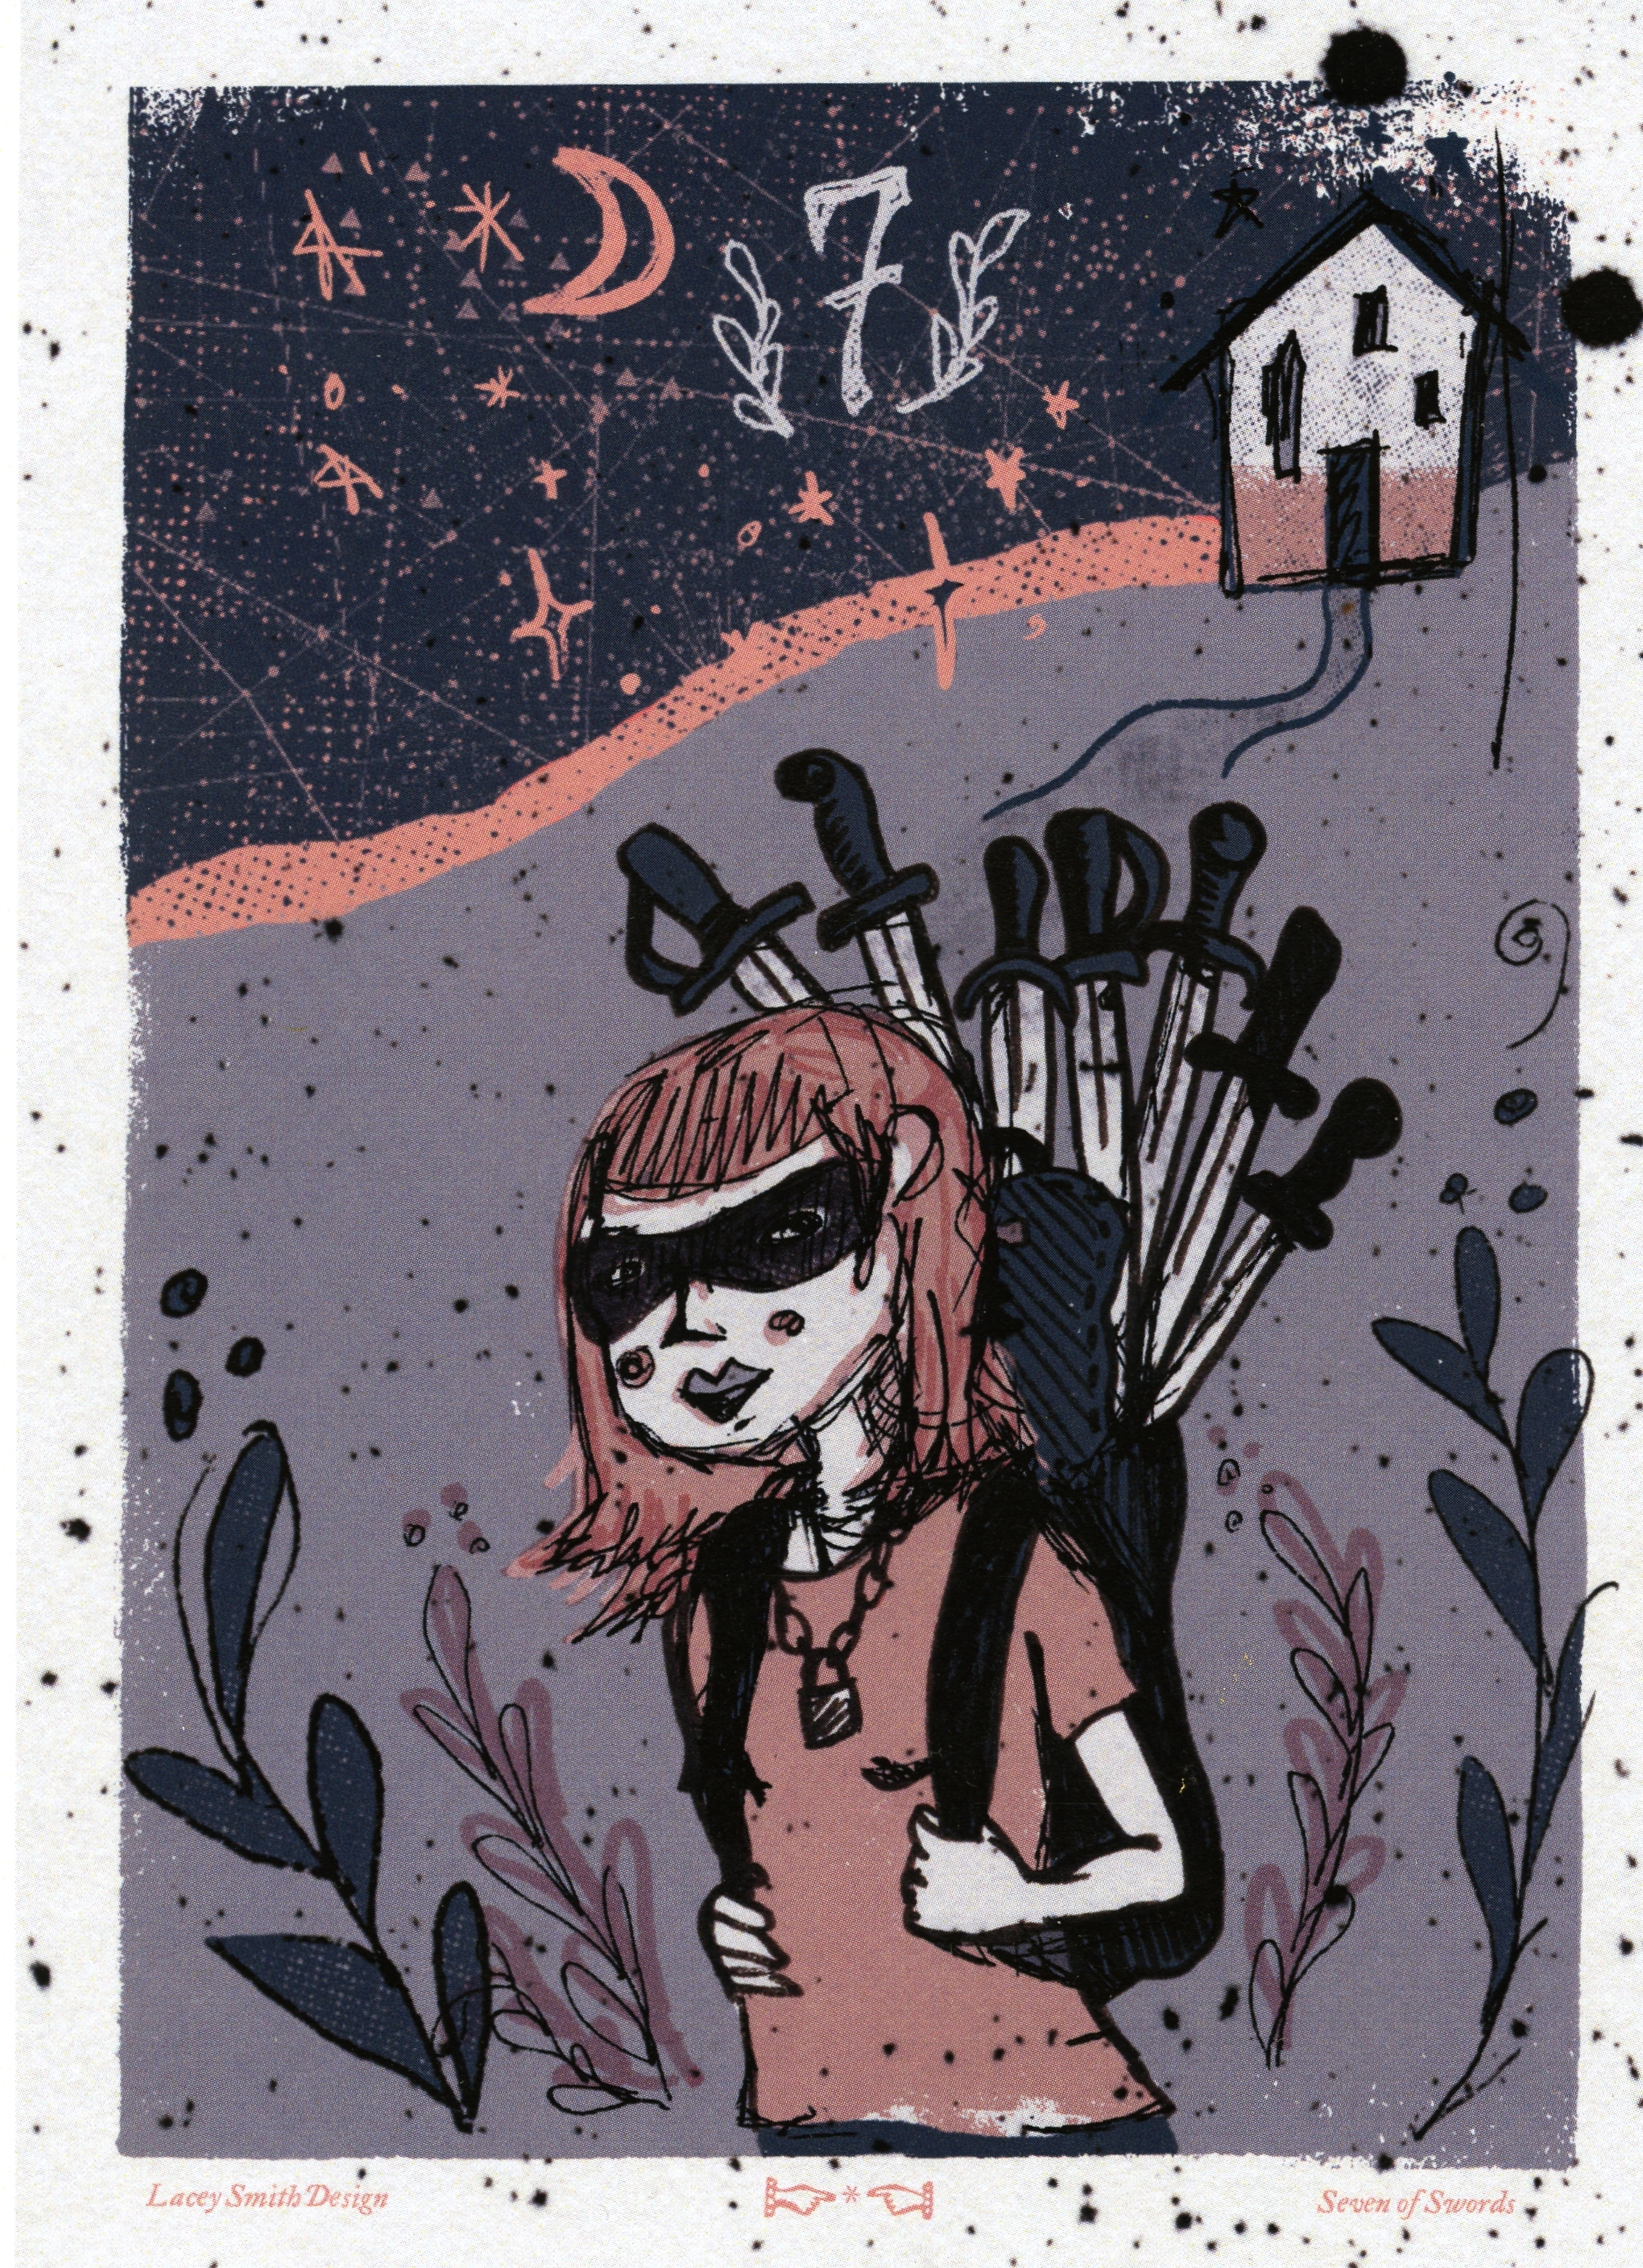 Lacey Smith - Seven of Swords